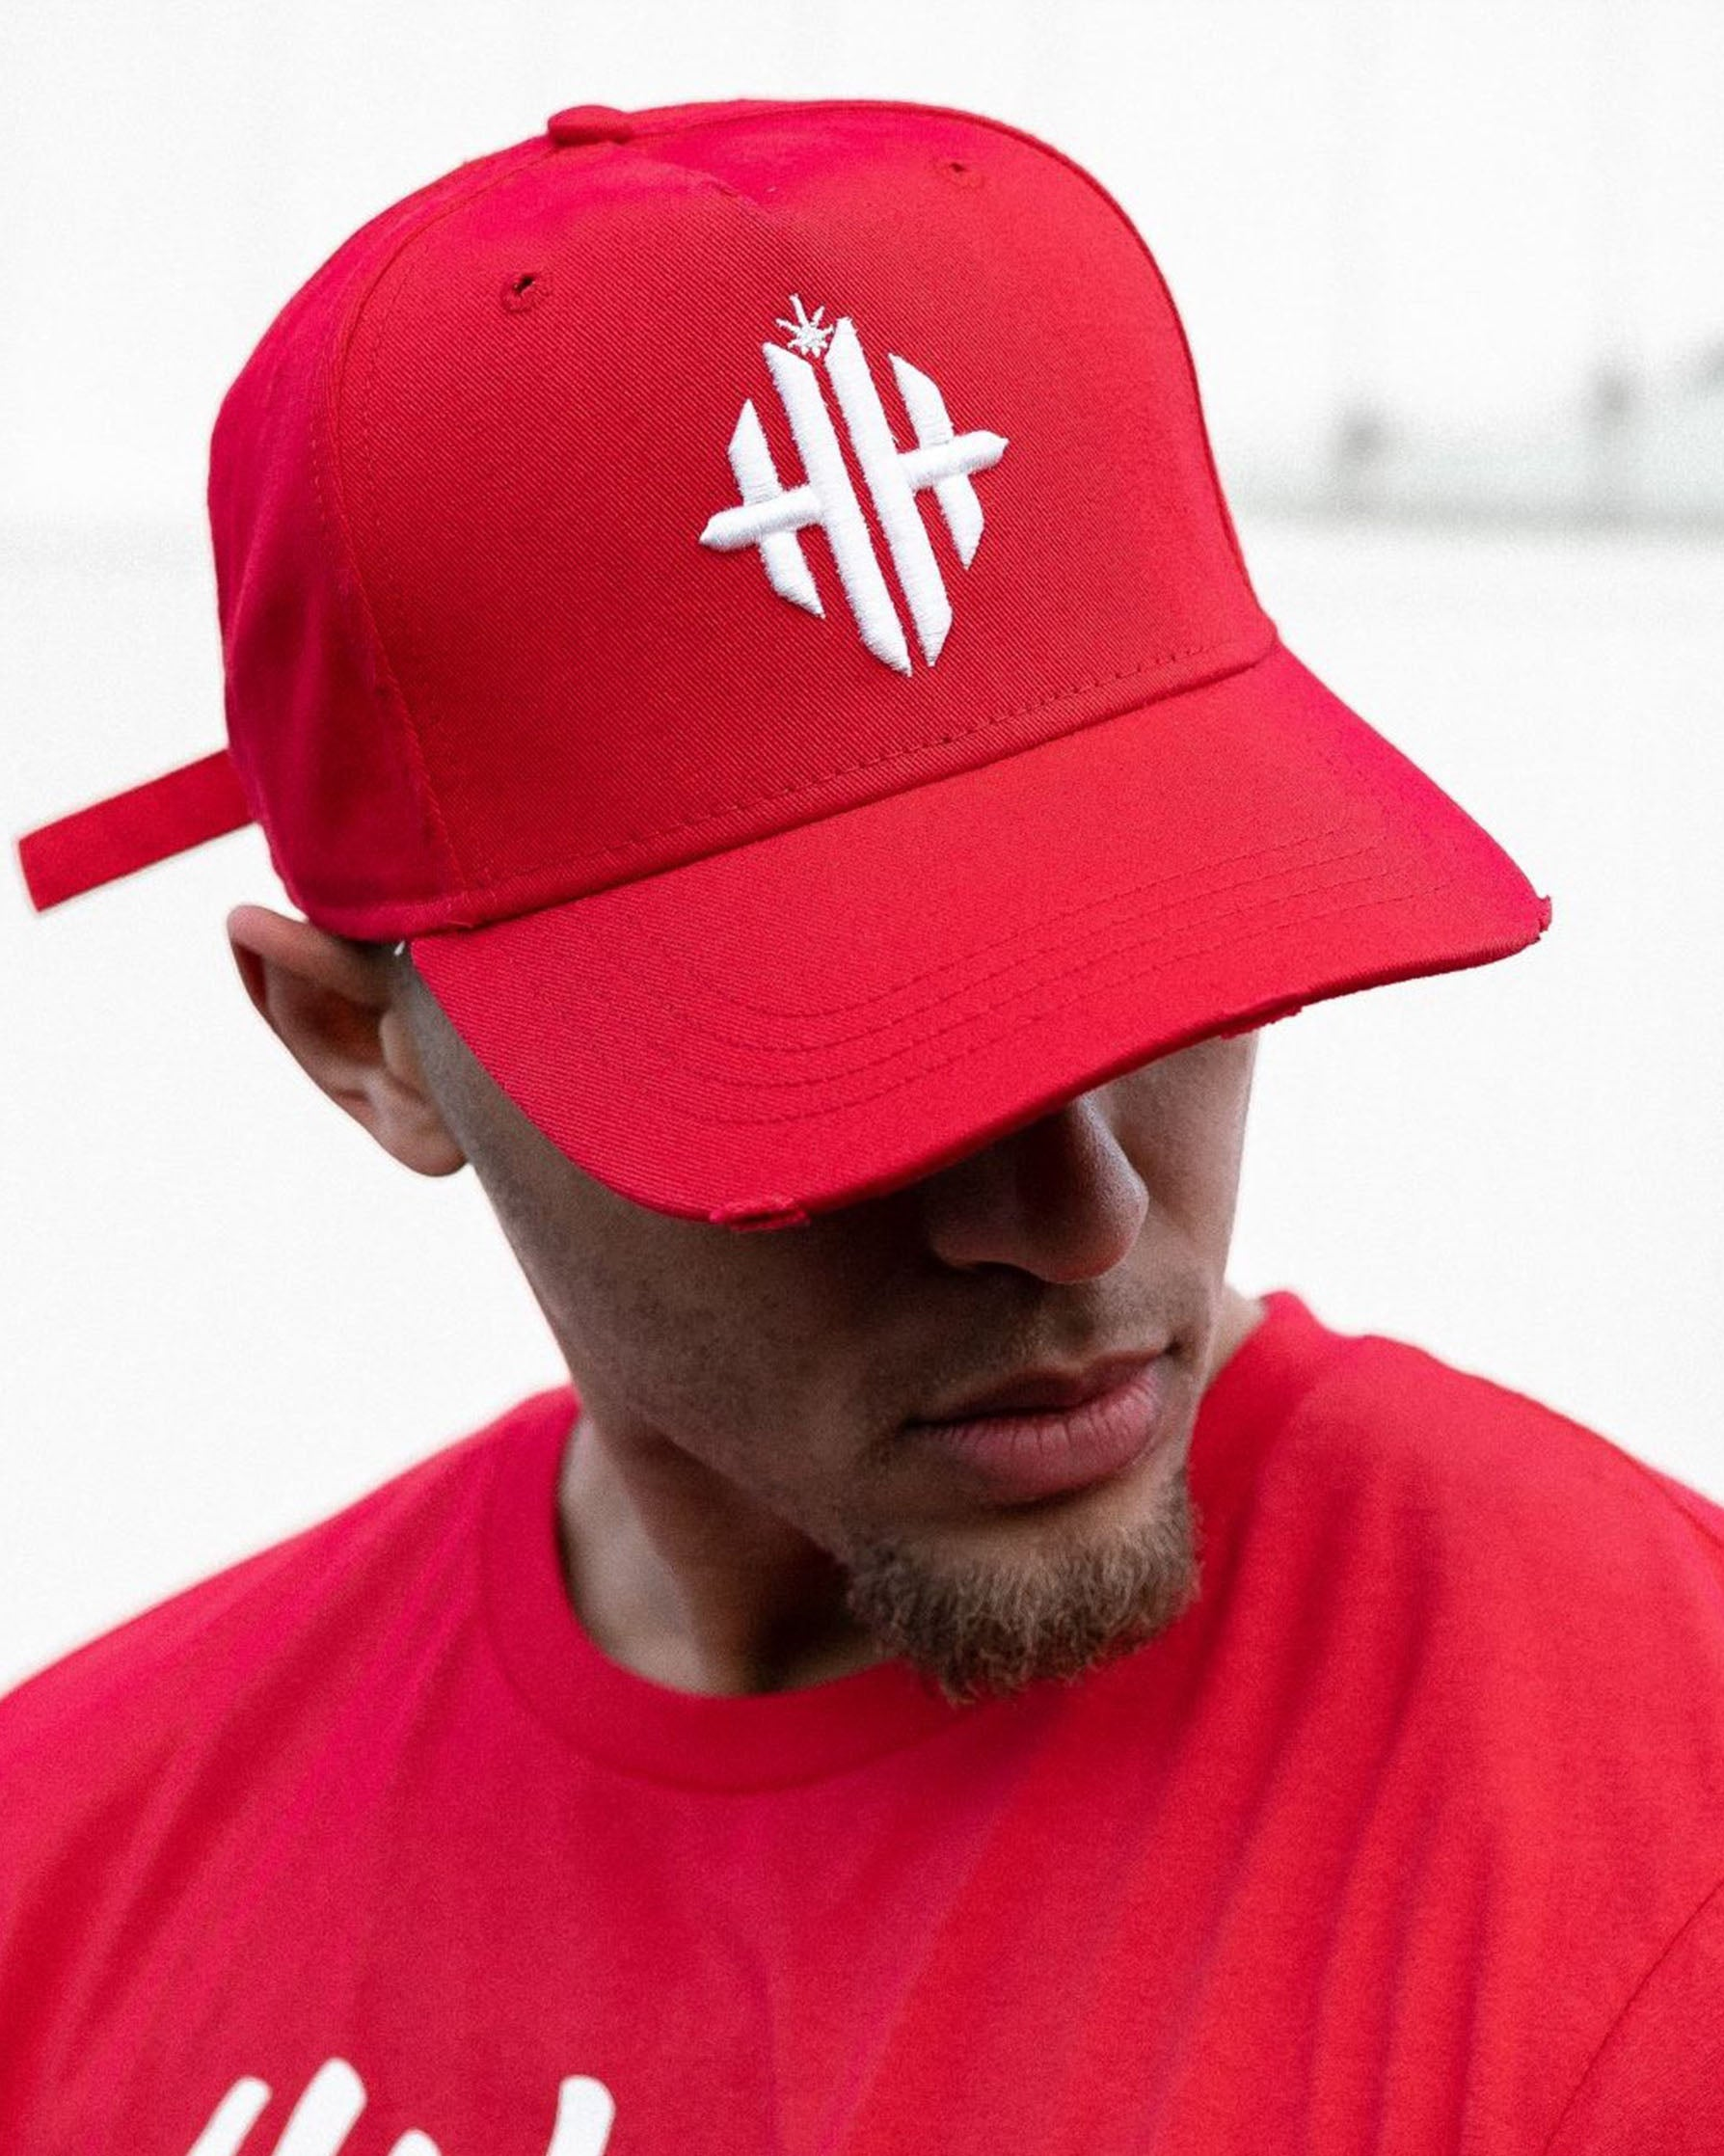 Herbman Hustlin Monogram Cap - Red/White